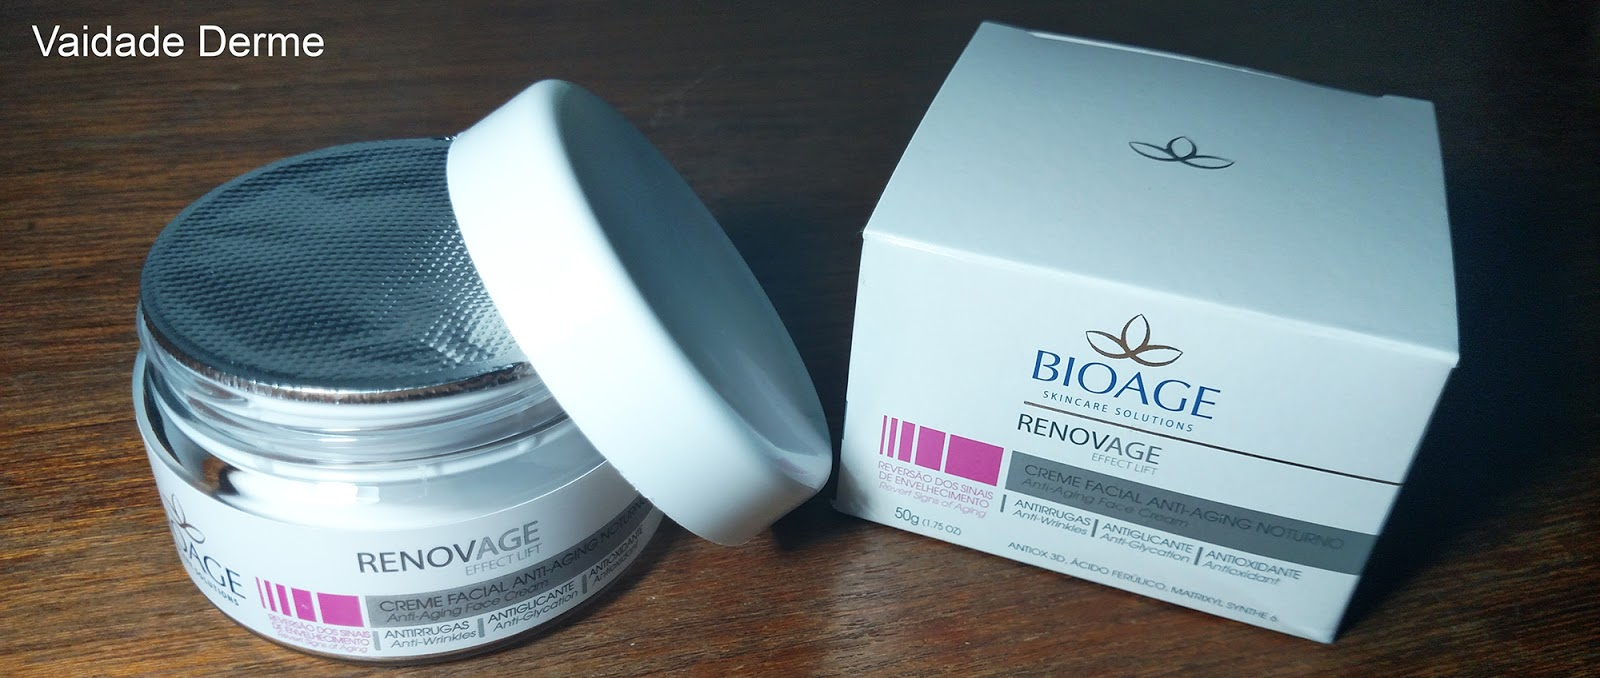 Bioage Renovage Effect Lift Creme Noturno